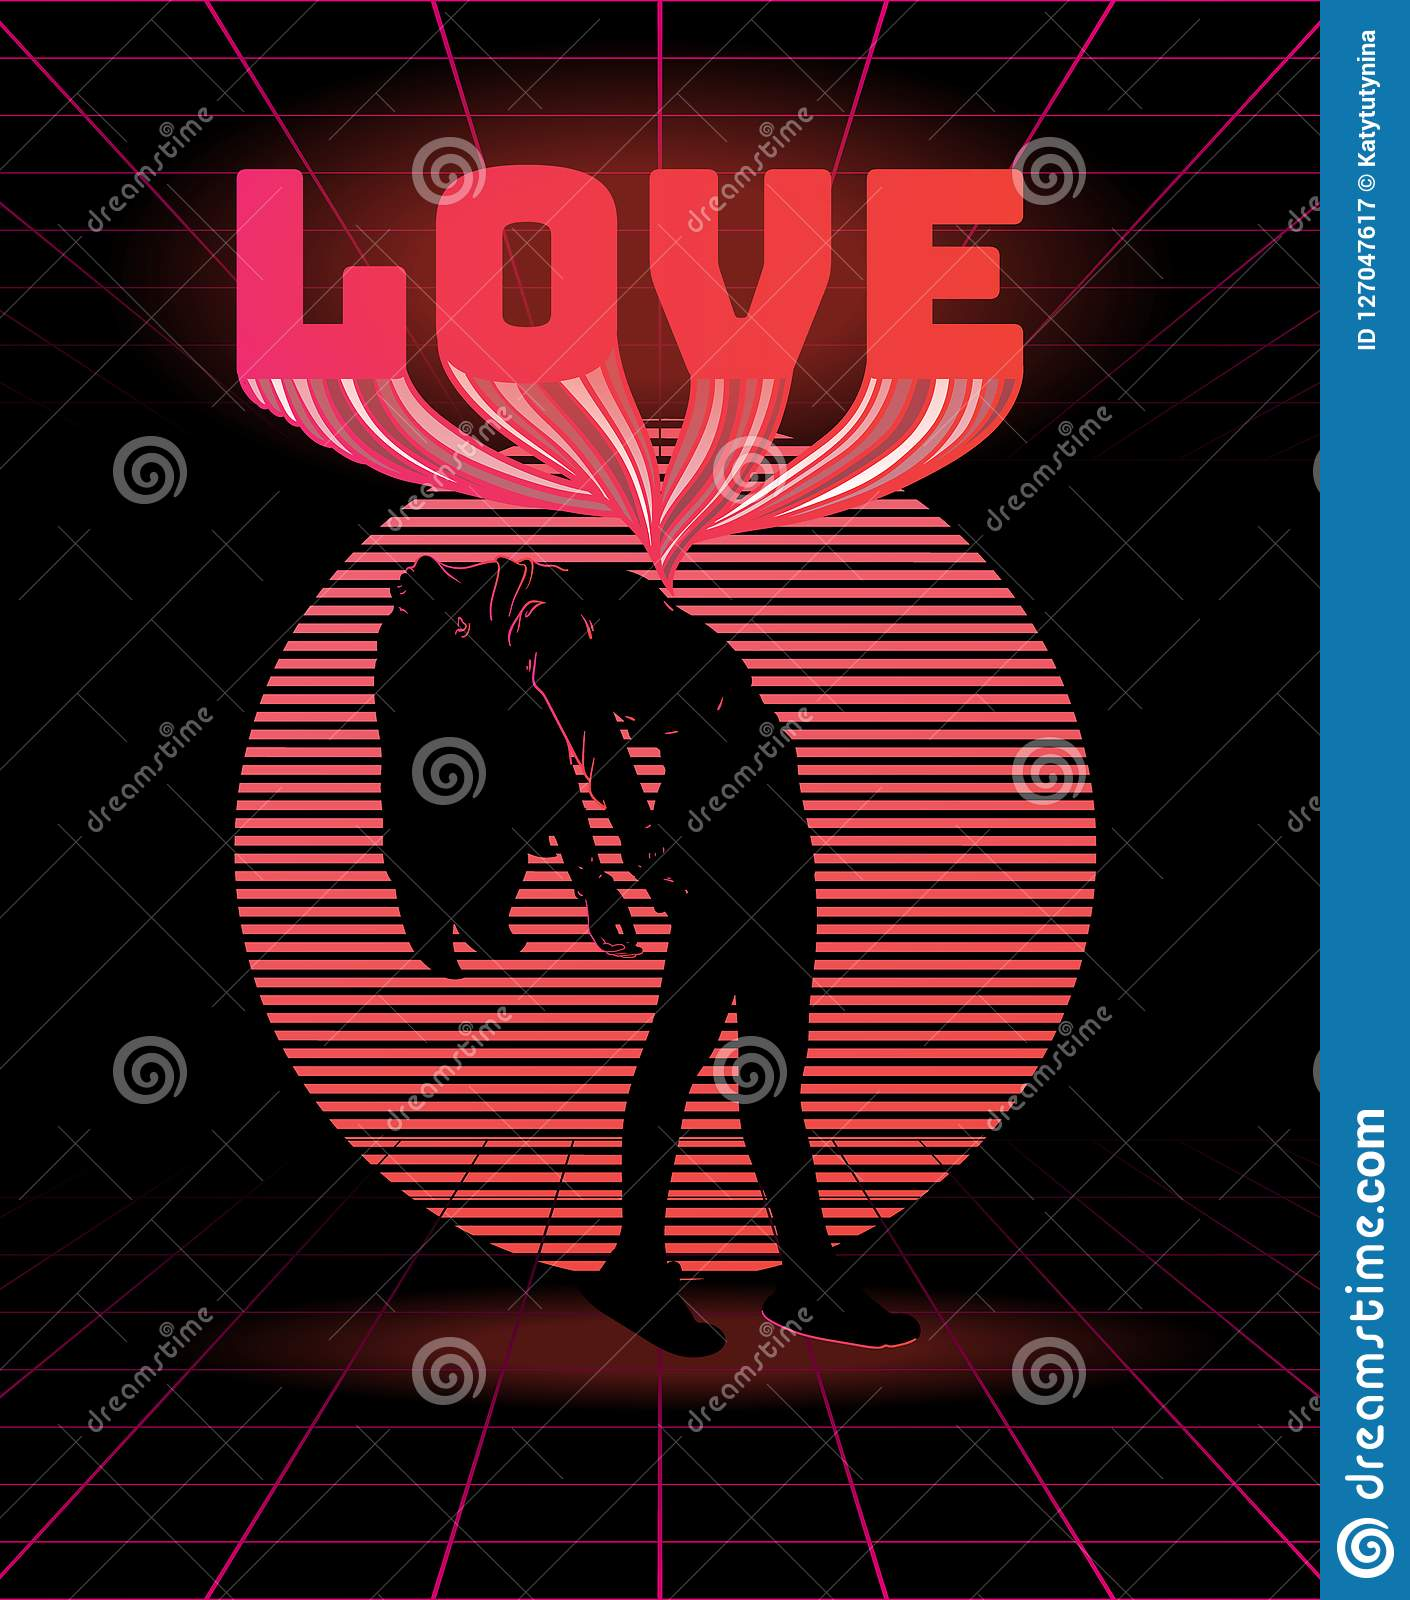 love vector poster with silhouette of thin girl made in vaporwave